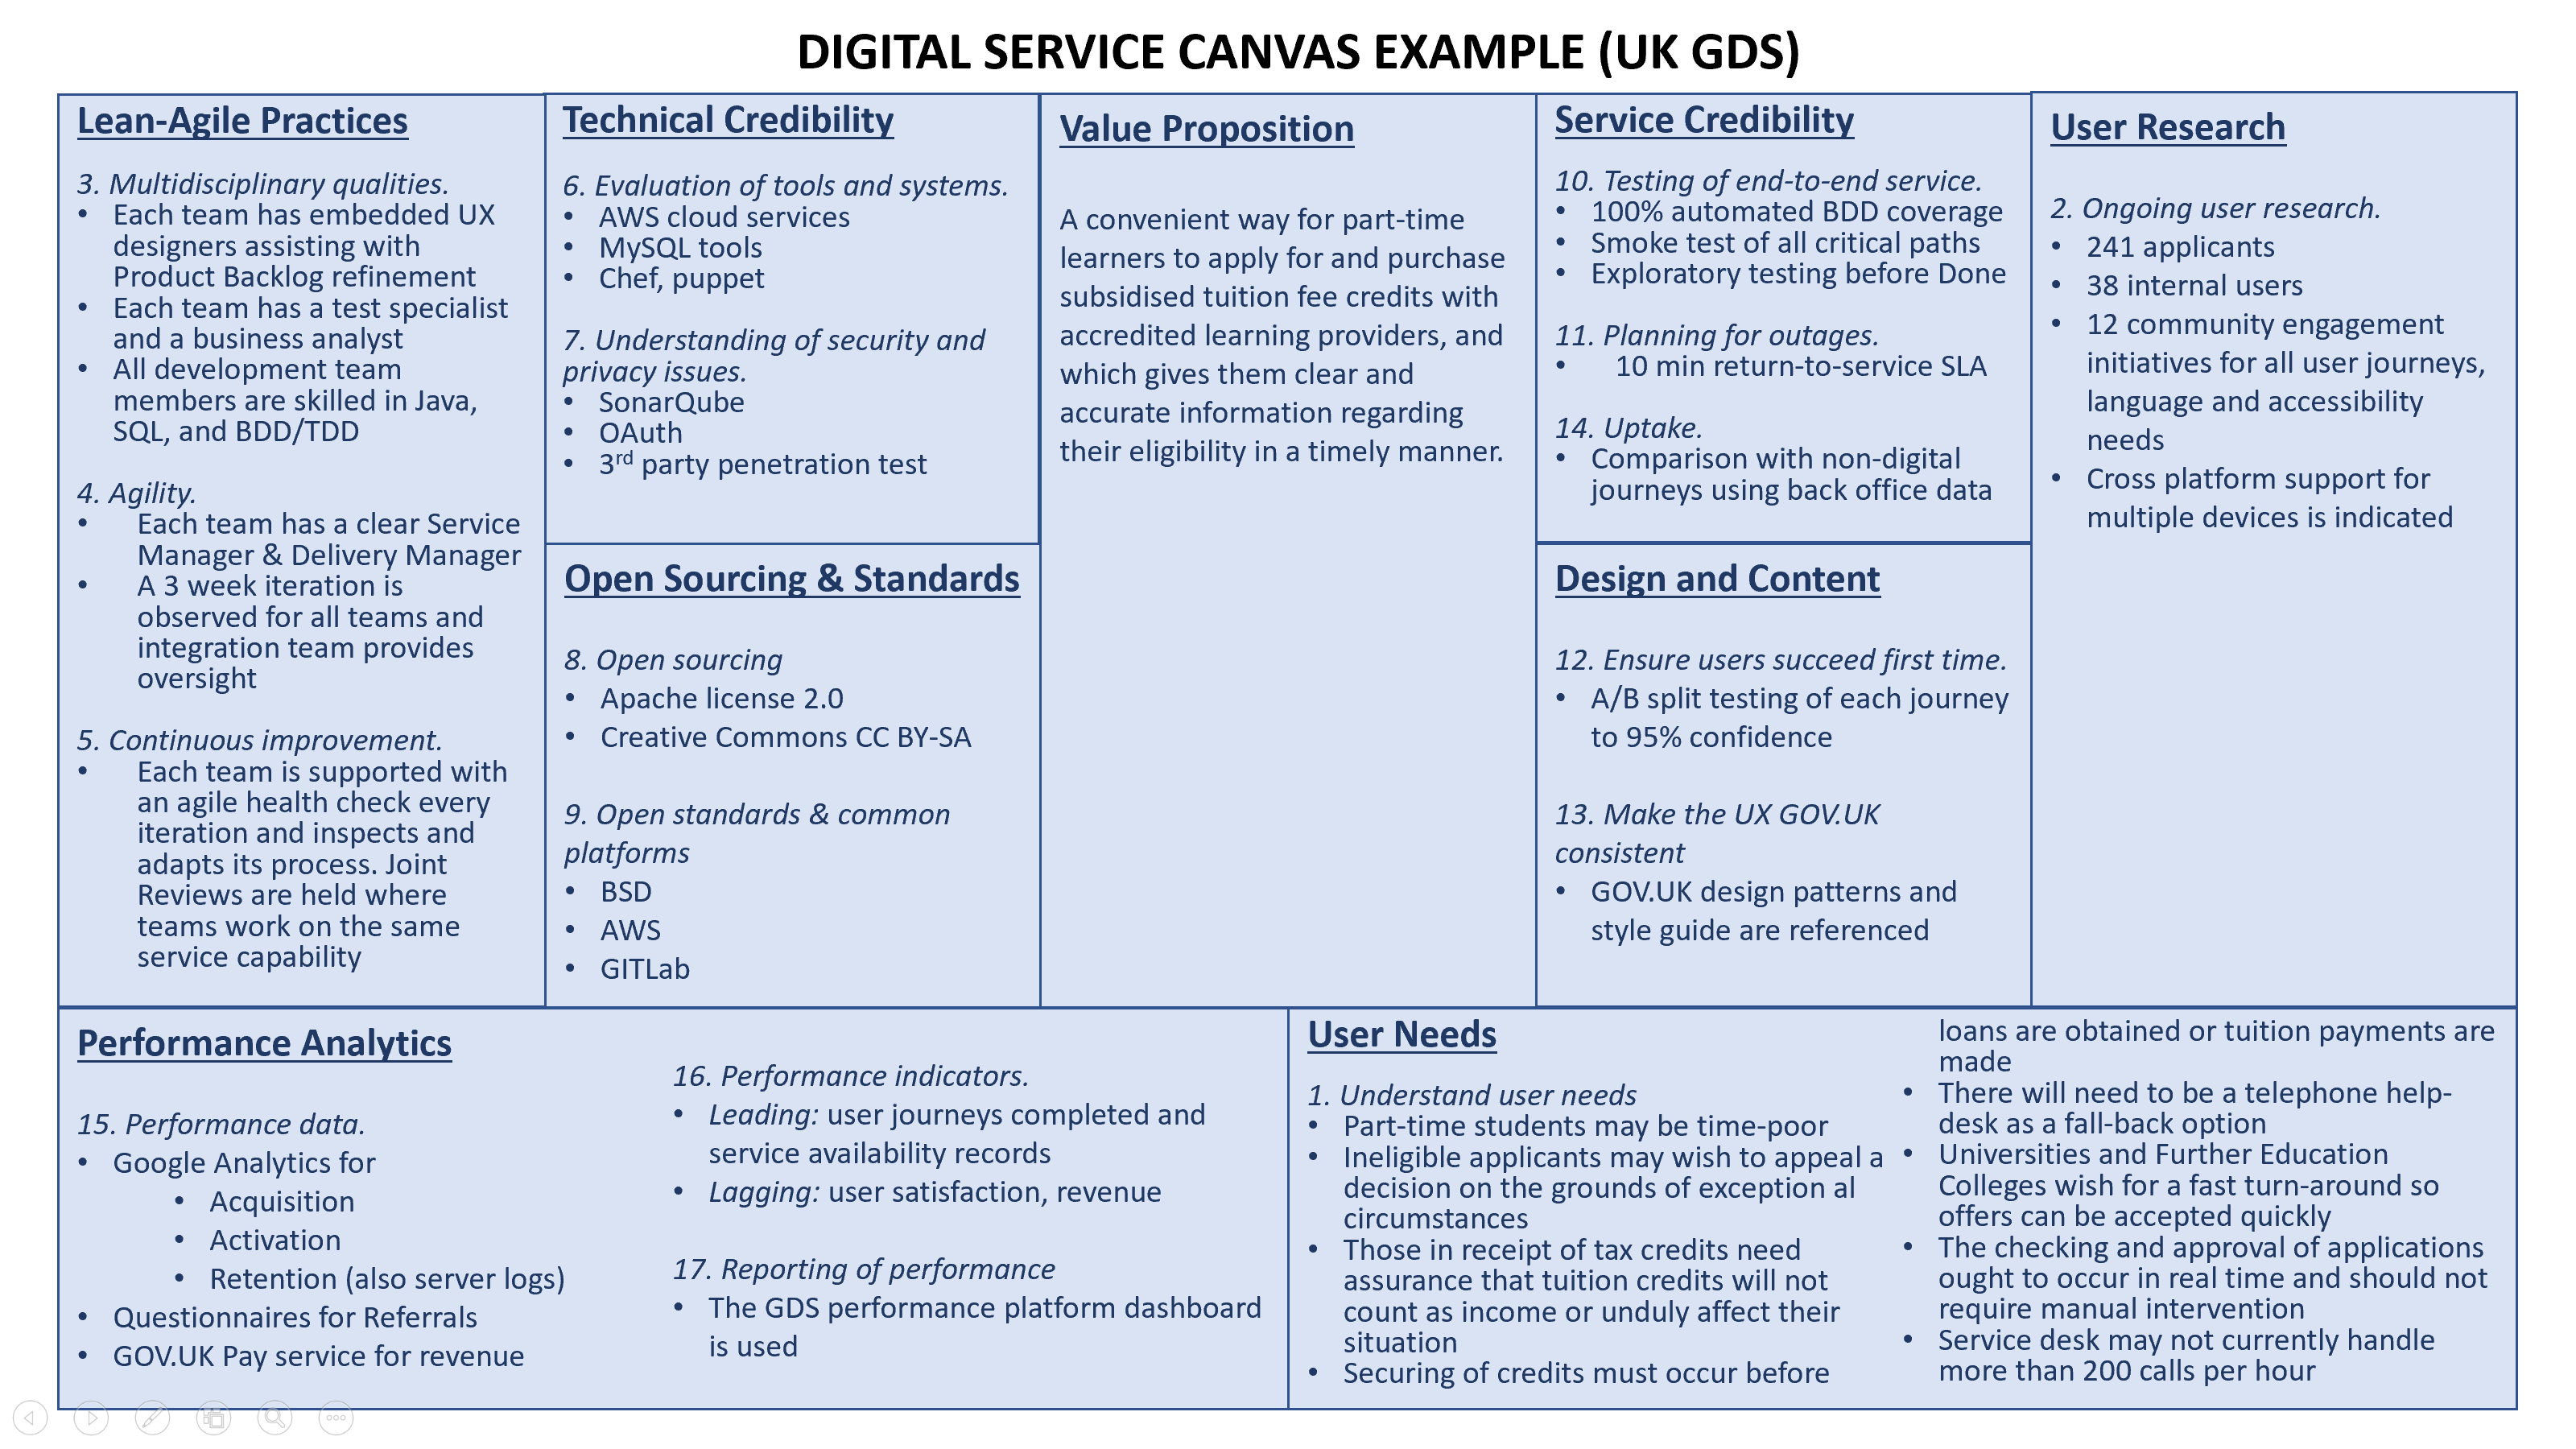 Digital Service Canvas example